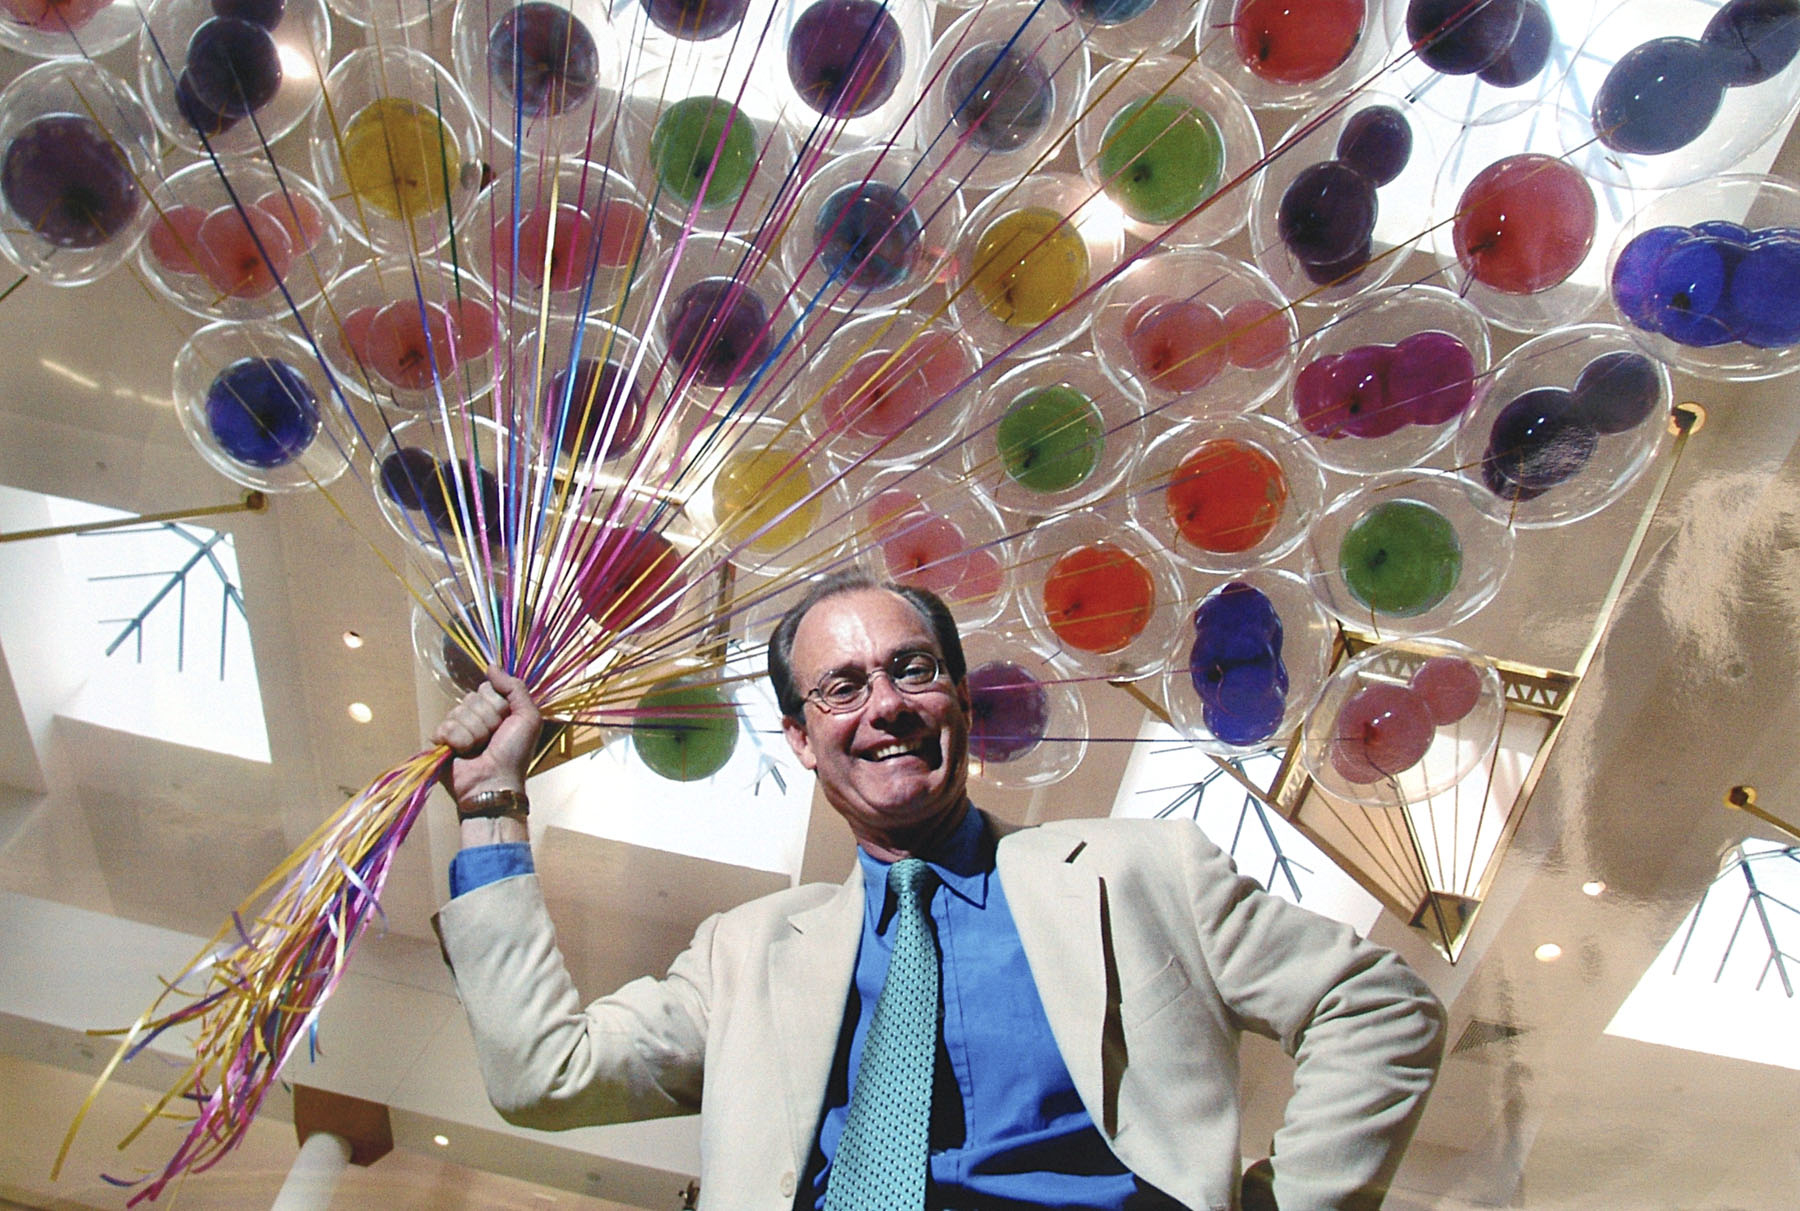 Treb Heining and a handful of colorful balloons. — Photo courtesy Treb Heining ©